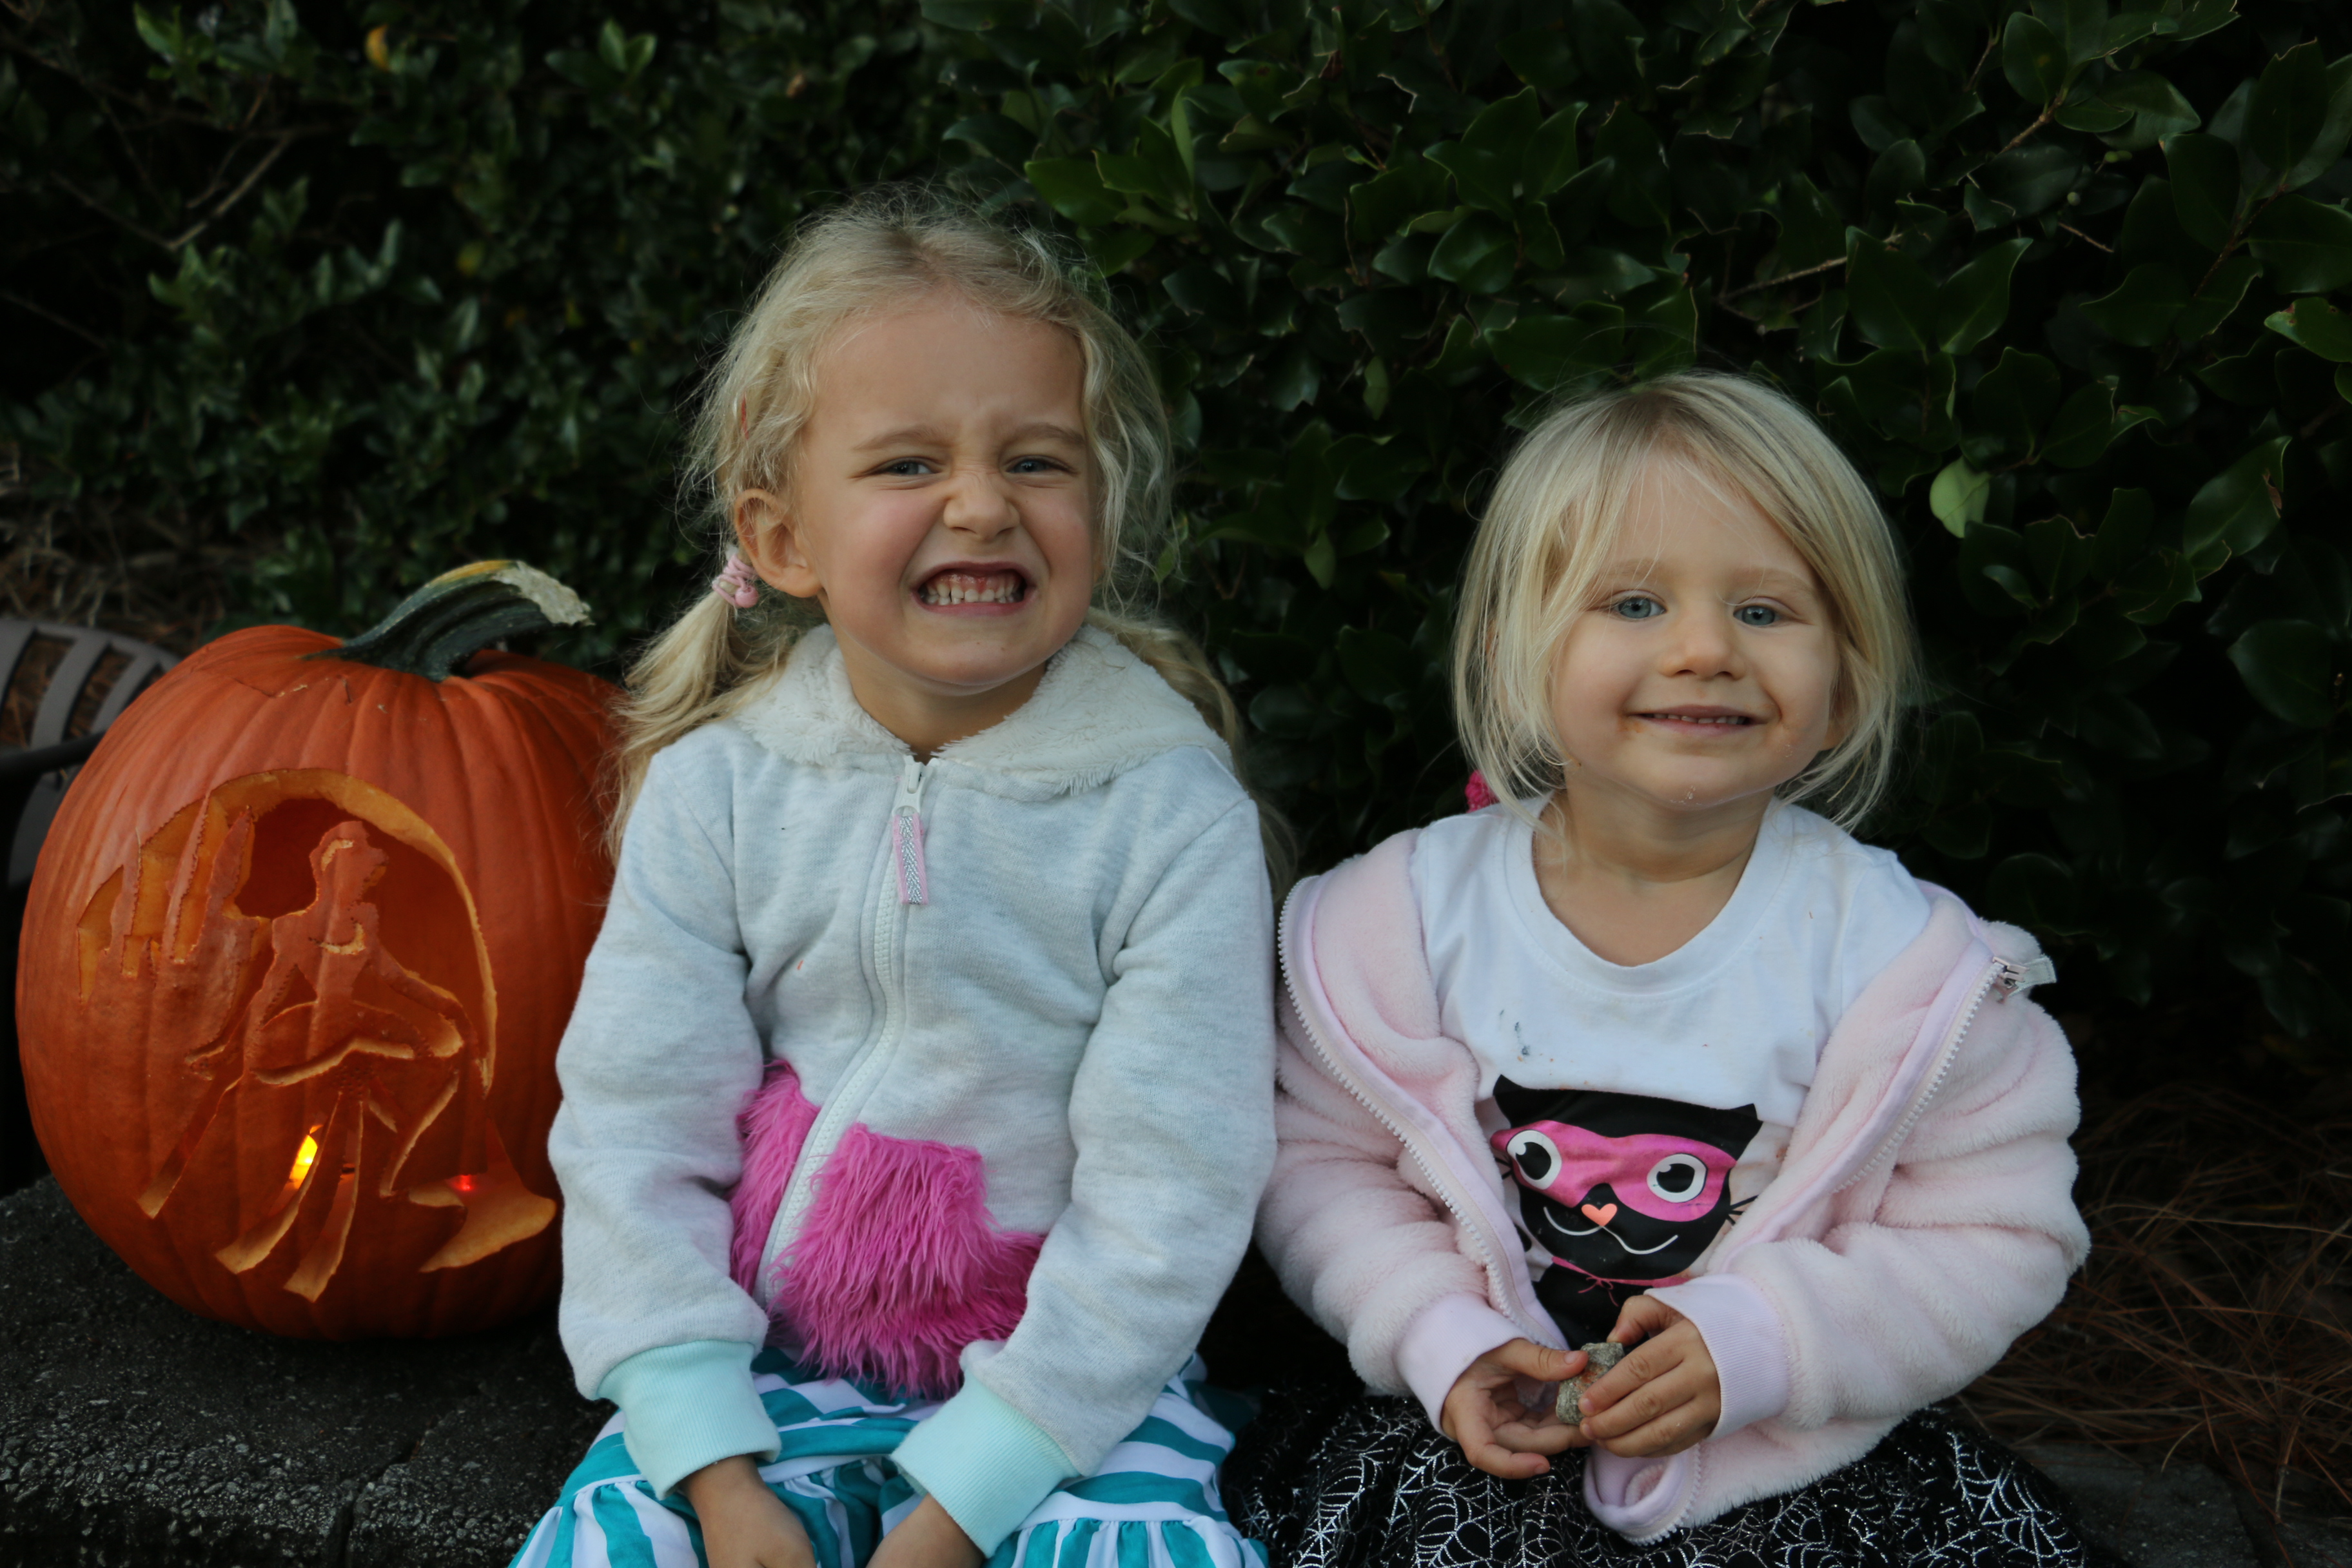 Ellie and Claire sit beside a Cinderella-themed pumpkin that caught their attention.